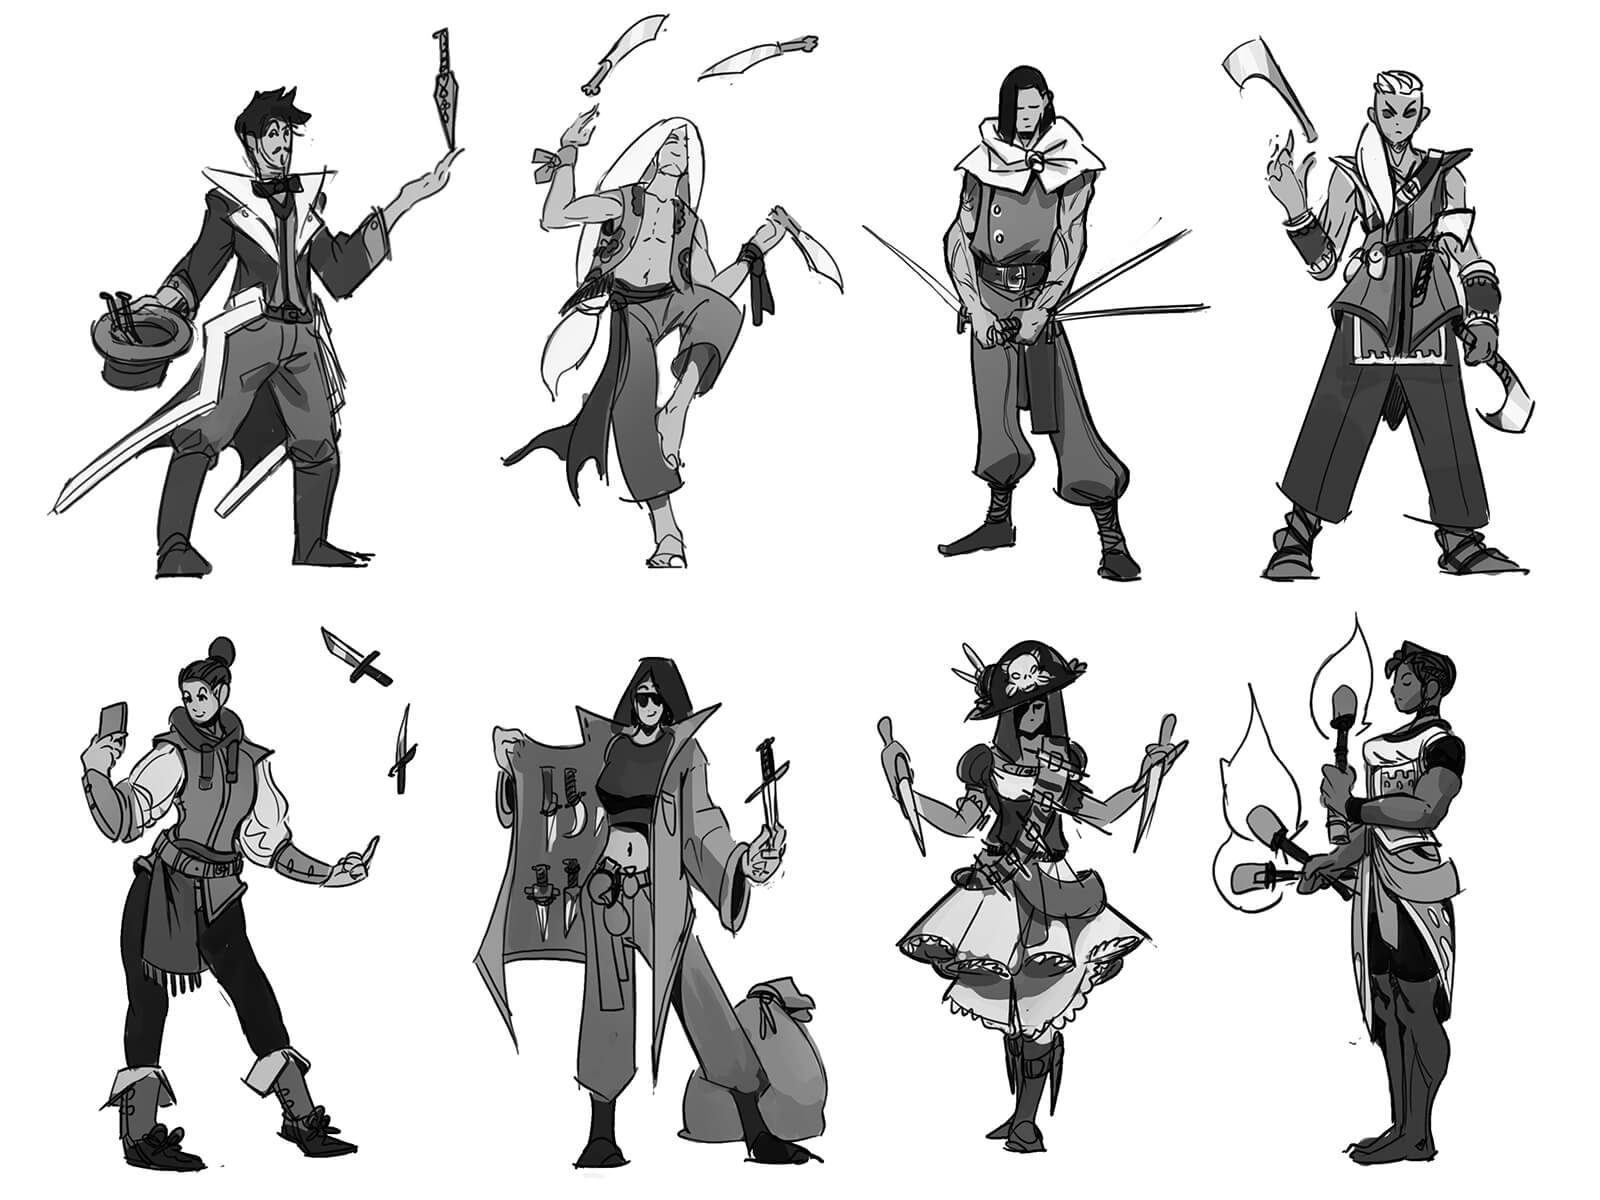 Sketches of various characters using knives and swords